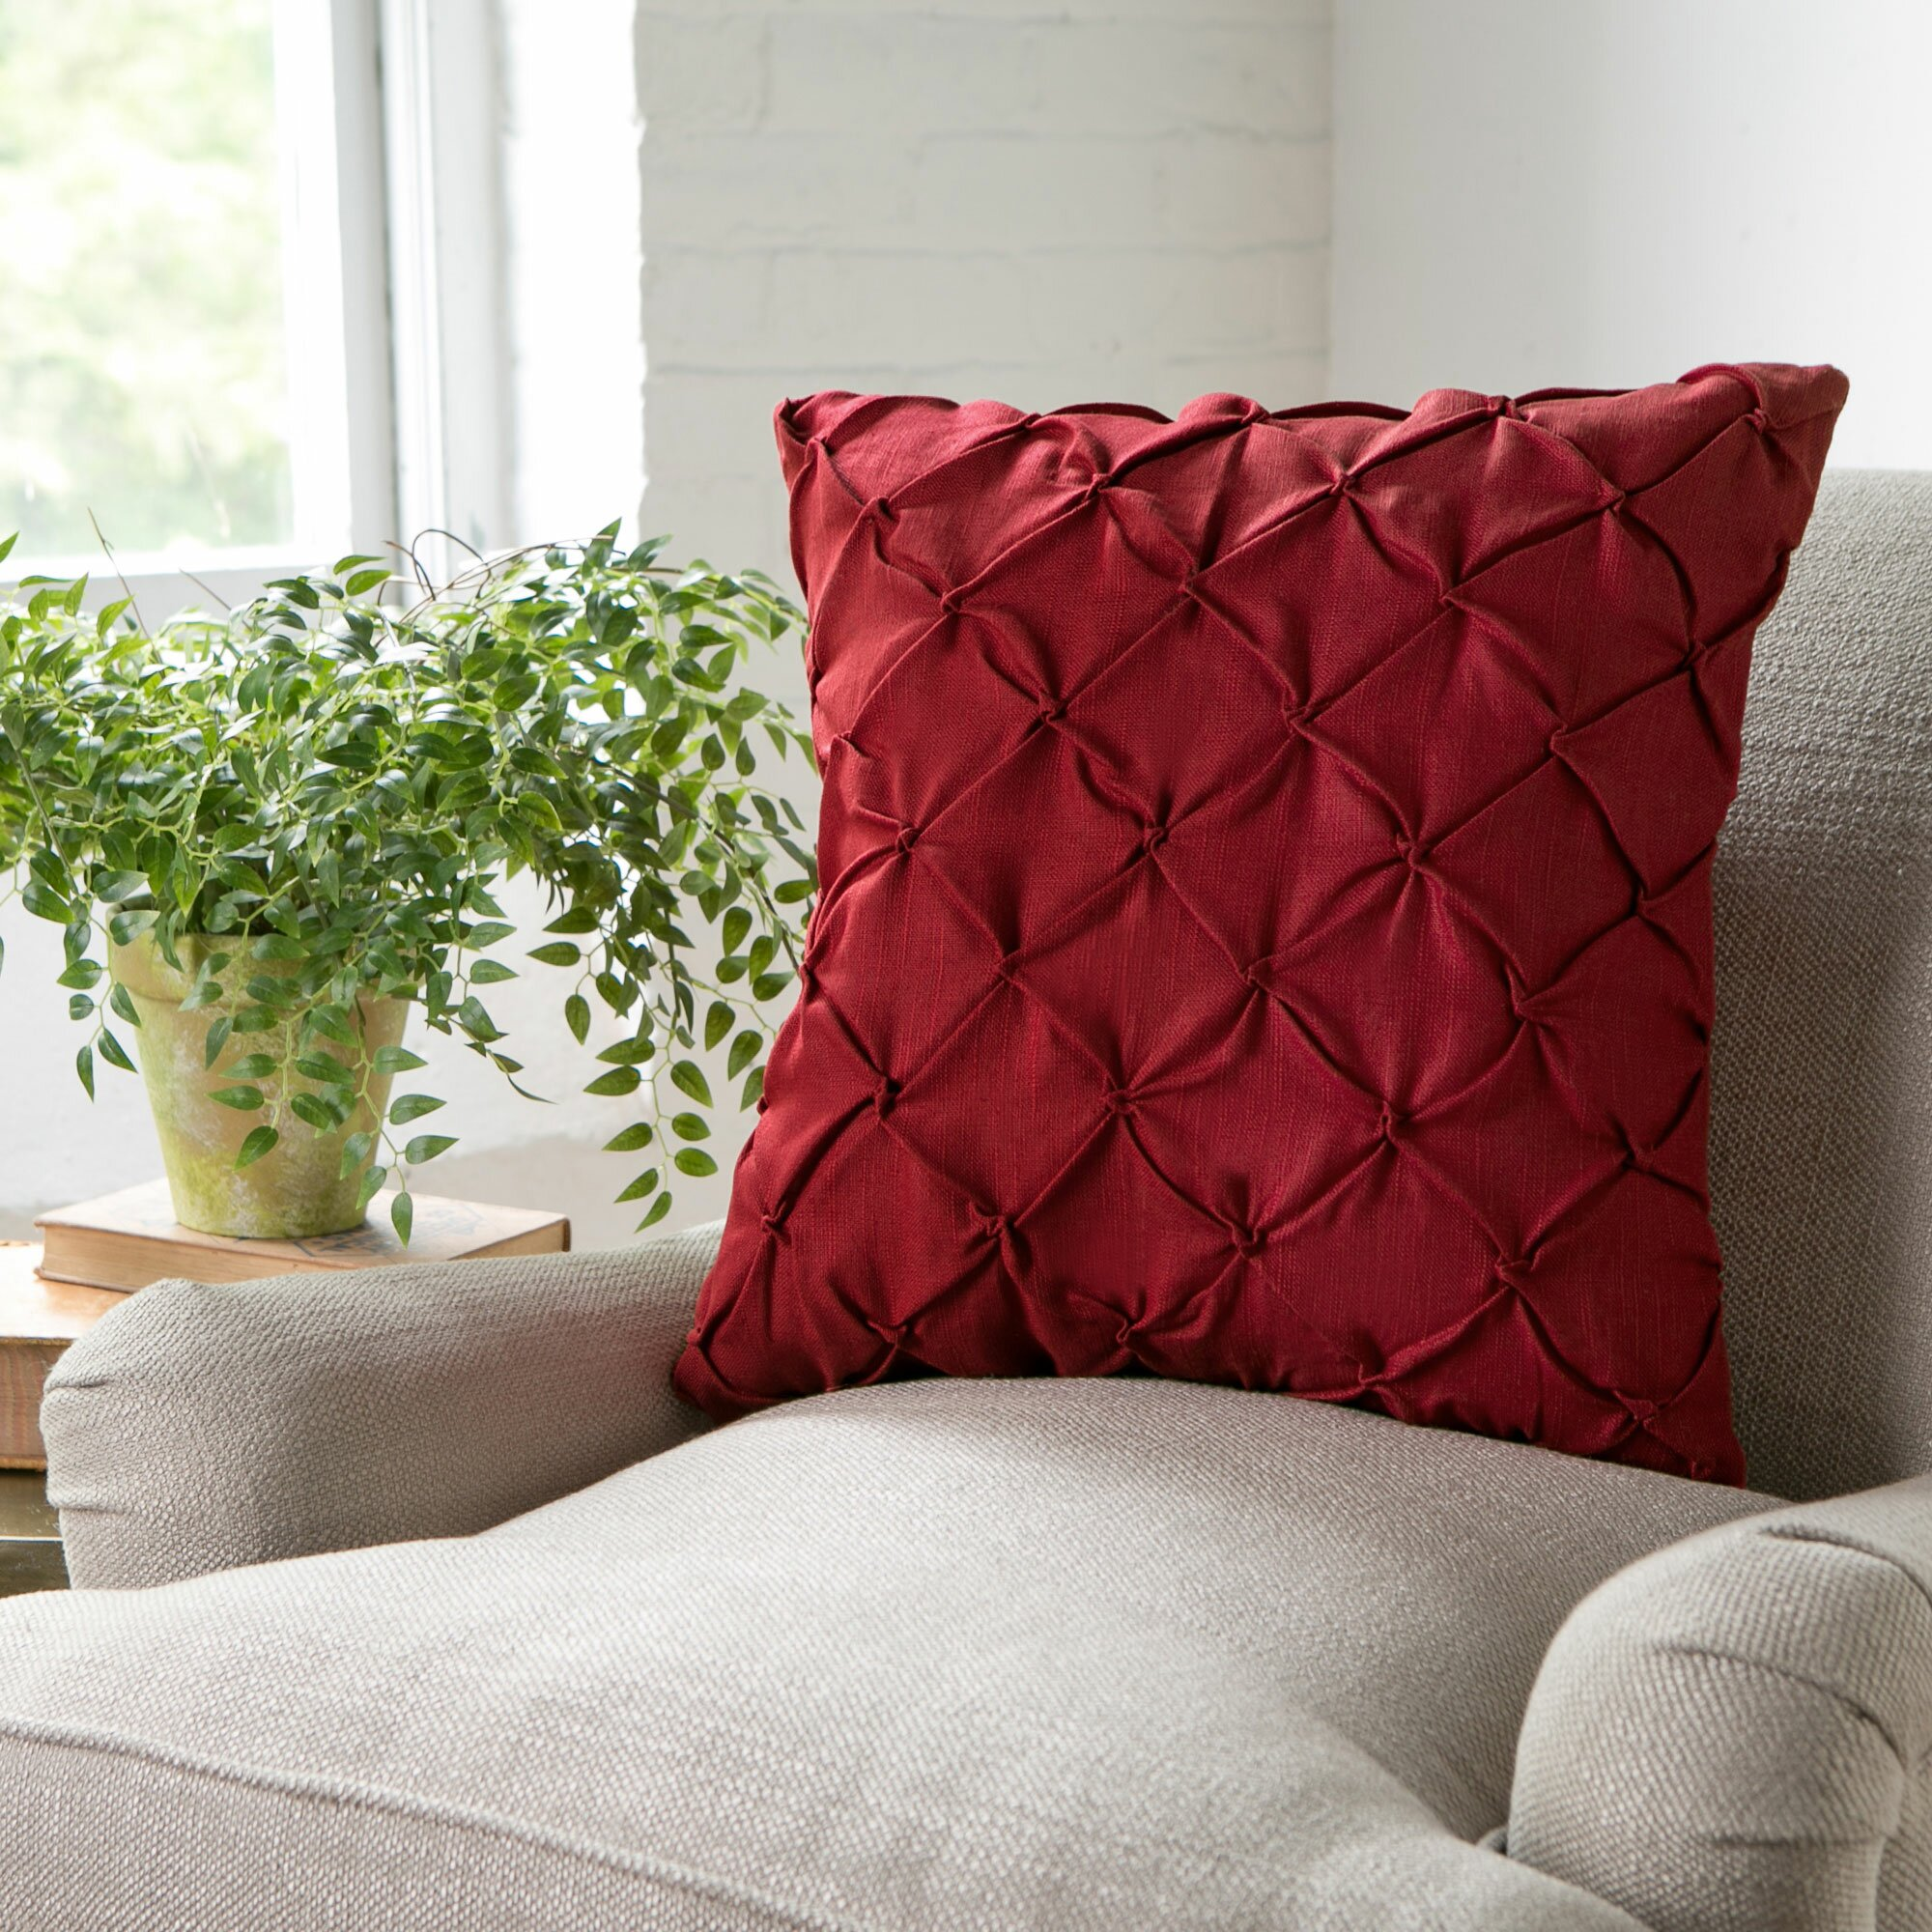 Wayfair Decorative Pillow Covers : Birch Lane Alda Pintucked Pillow Cover & Reviews Wayfair